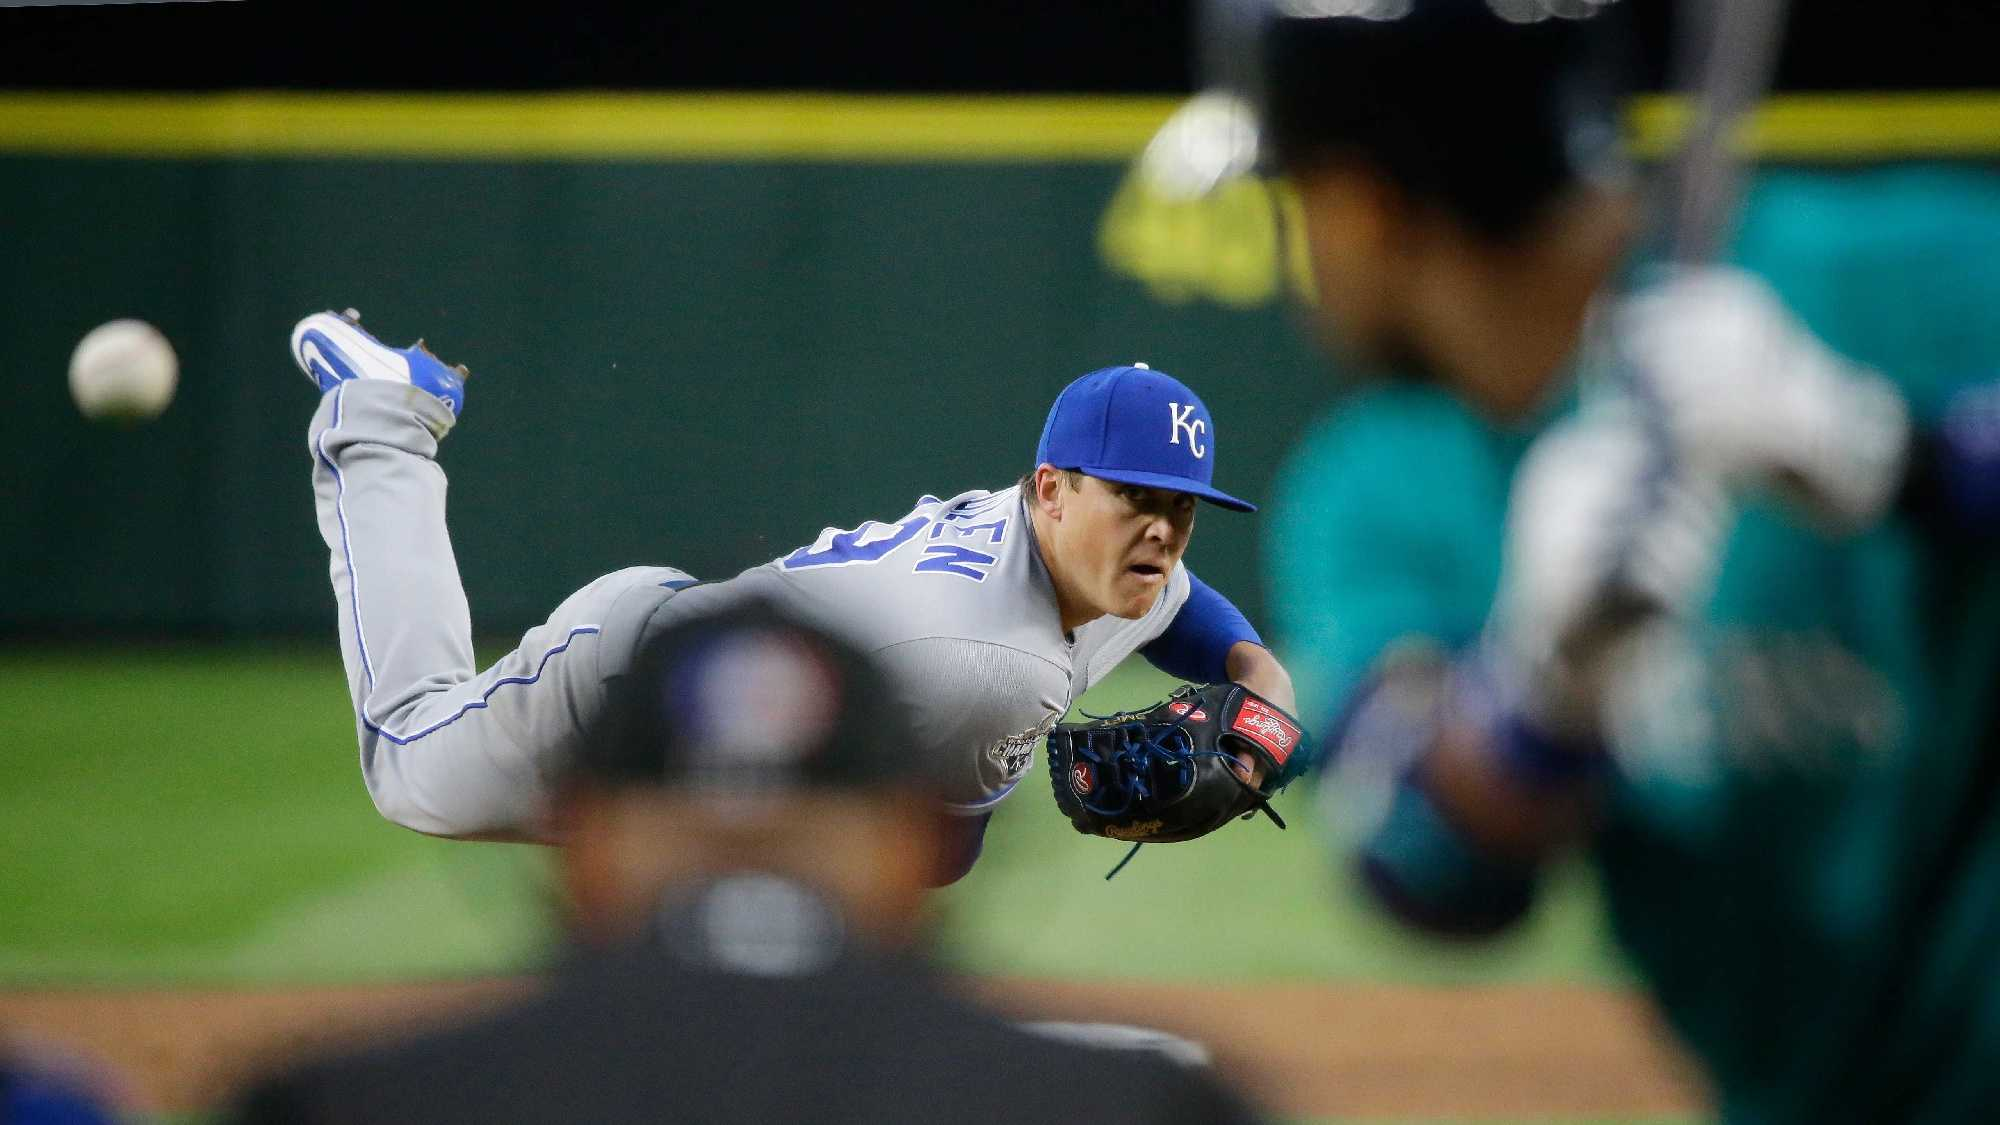 Kansas City Royals starting pitcher Kris Medlen throws against the Seattle Mariners in the third inning of a baseball game, Friday, April 29, 2016, in Seattle. (AP Photo/Ted S. Warren)